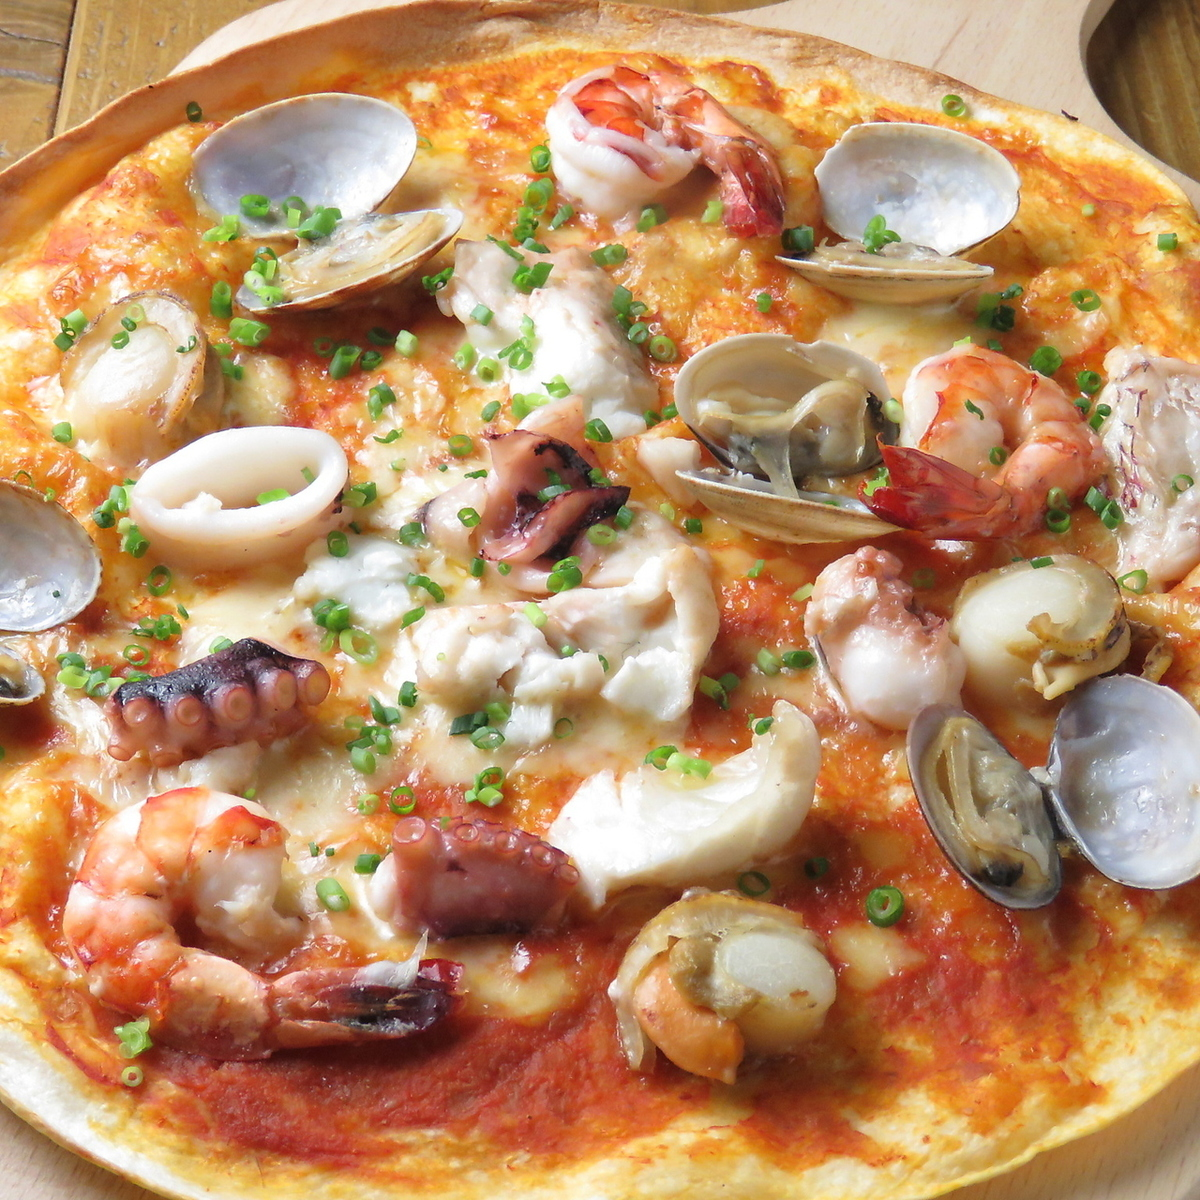 Fisherman's seafood pizza